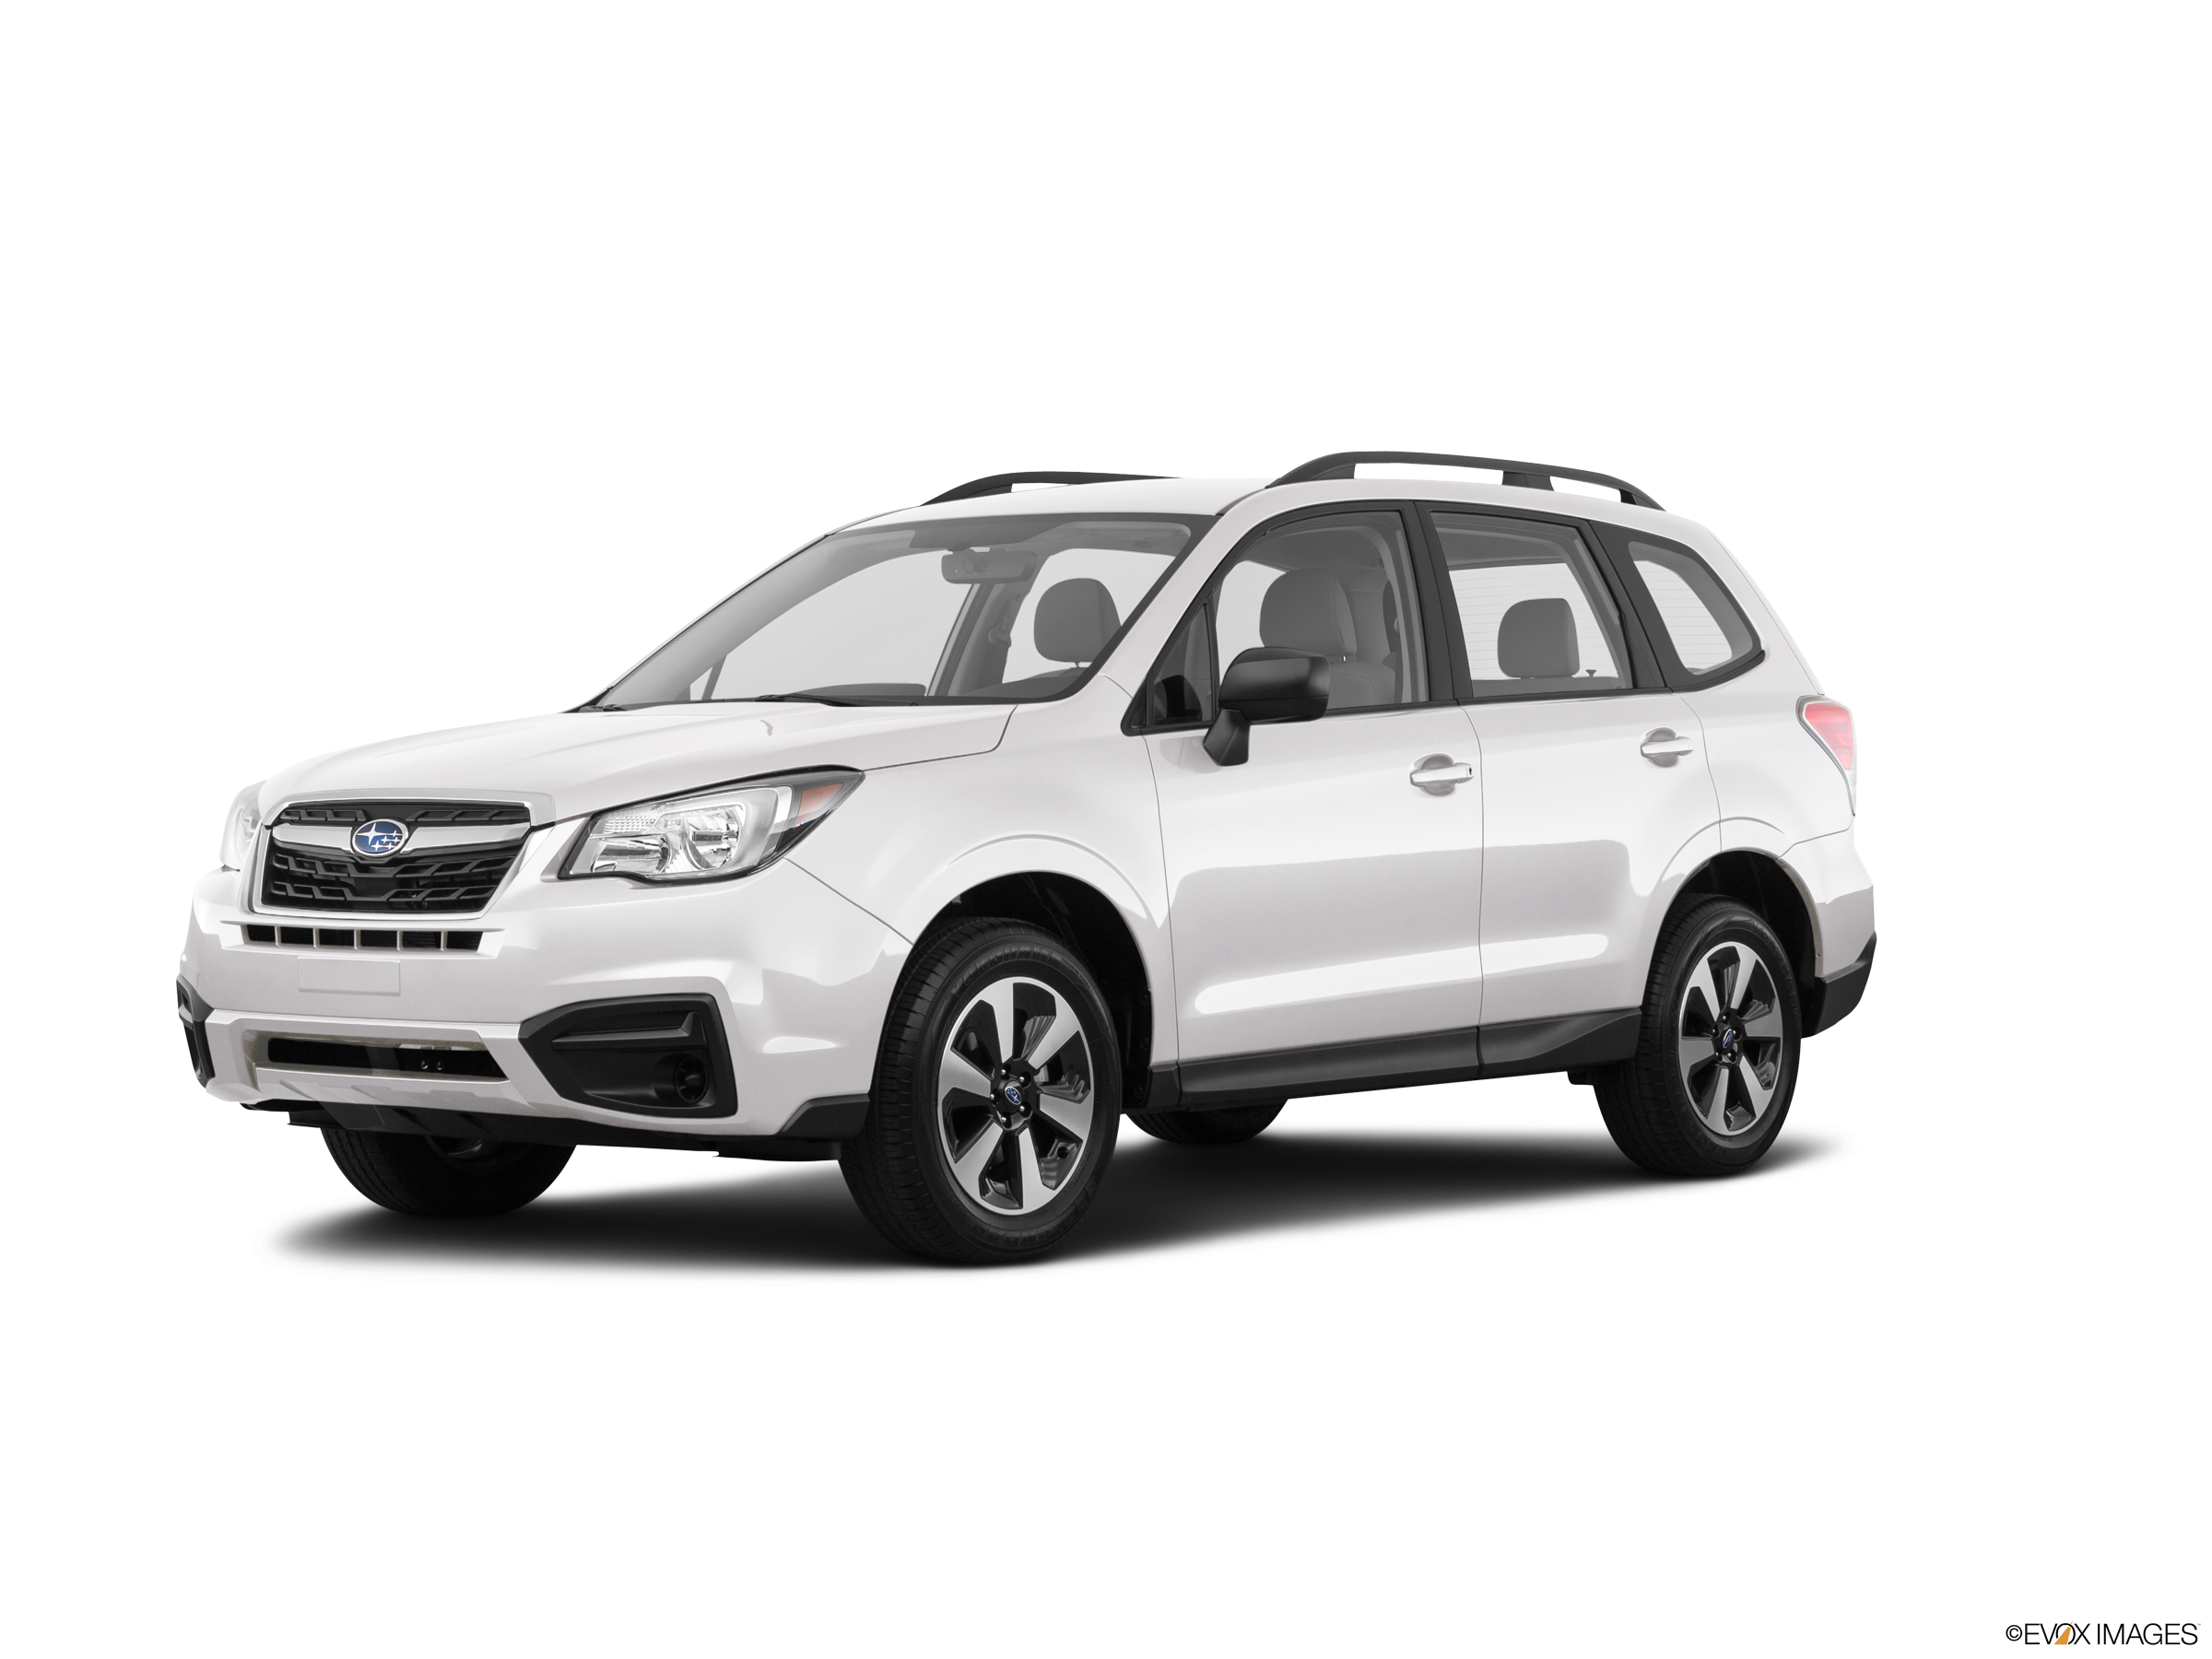 10 Best SUVs Under $25,000 - 2018 Subaru Forester